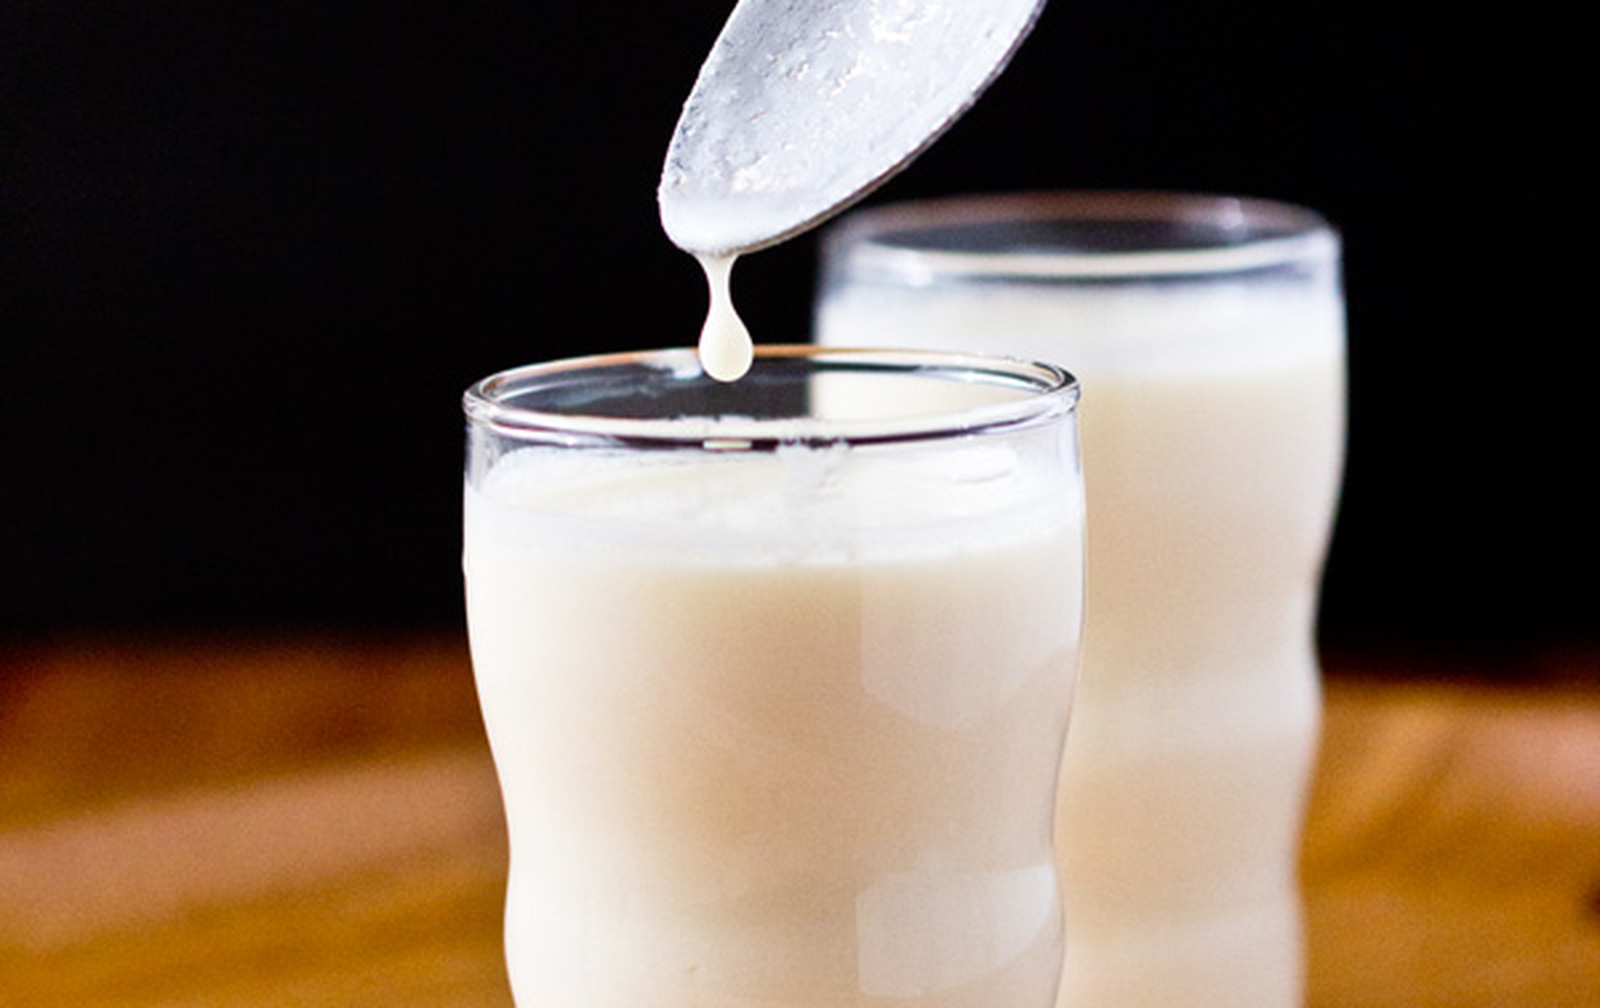 How to Make Soy Milk Kefir [Vegan, Gluten-Free]